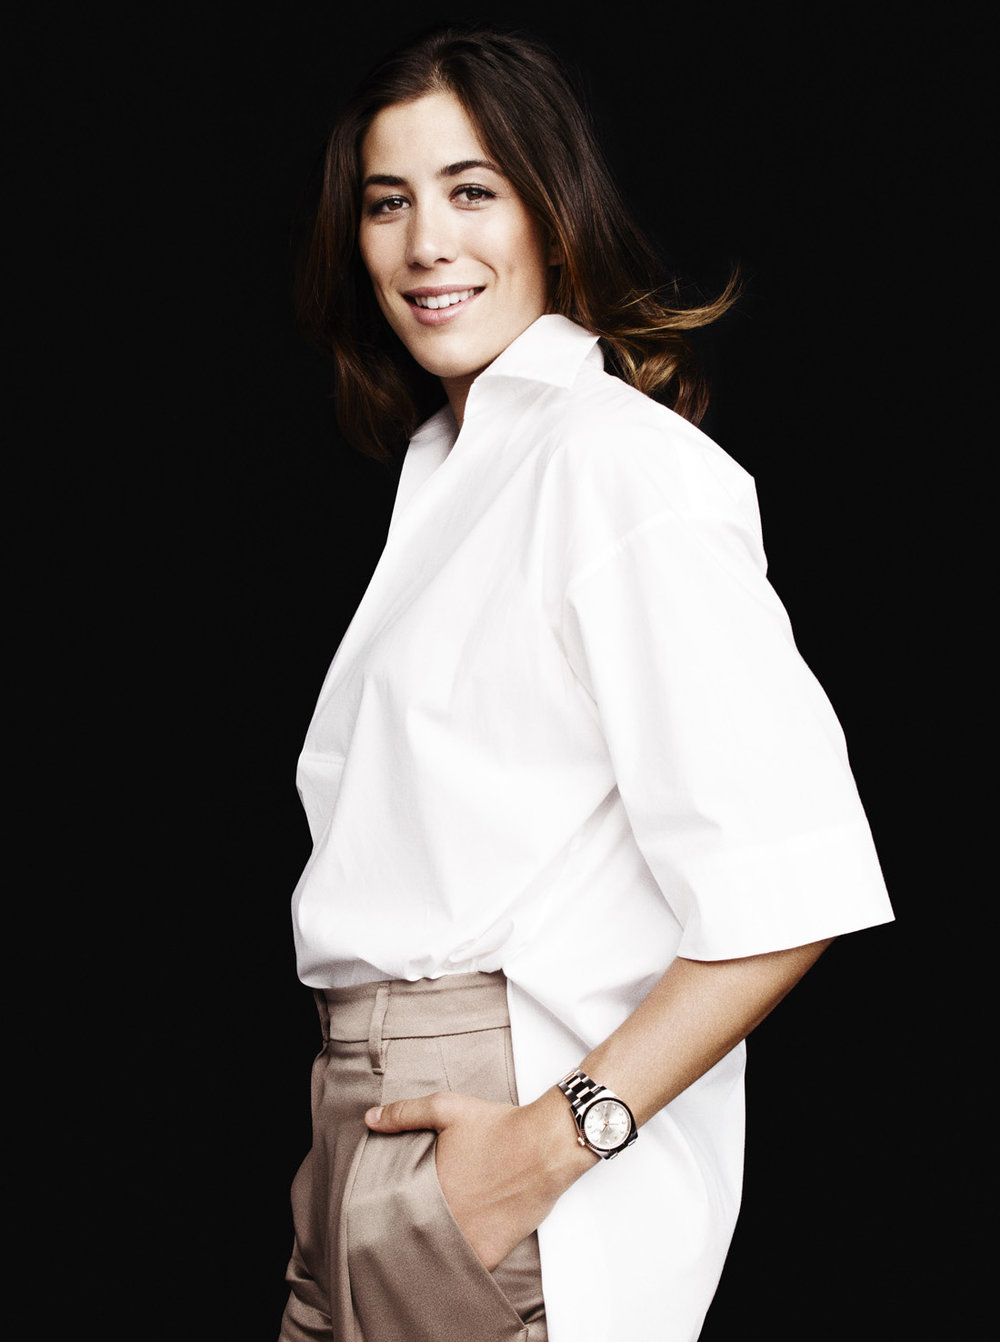 Copy of Garbiñe Muguruza for Rolex x ELLE